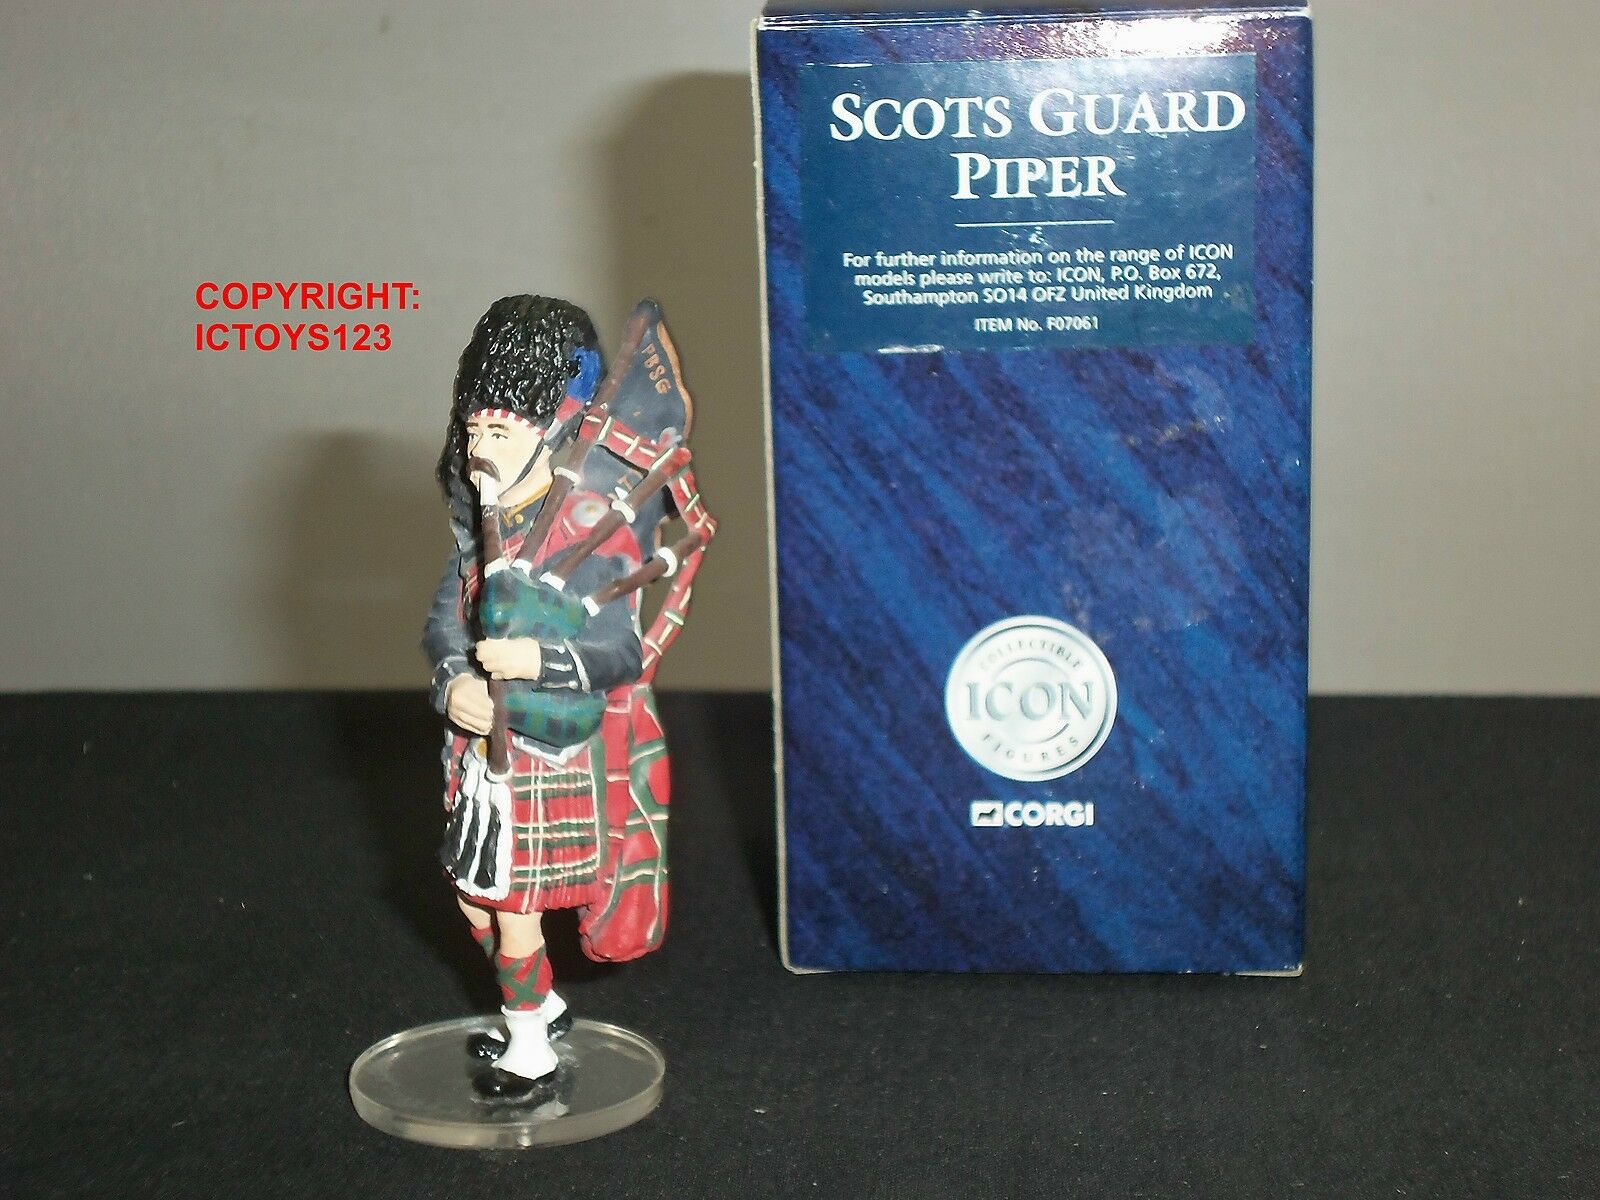 CORGI F07061 ICON SCOTS GUARDS BAND PIPER METAL TOY SOLDIER FIGURE